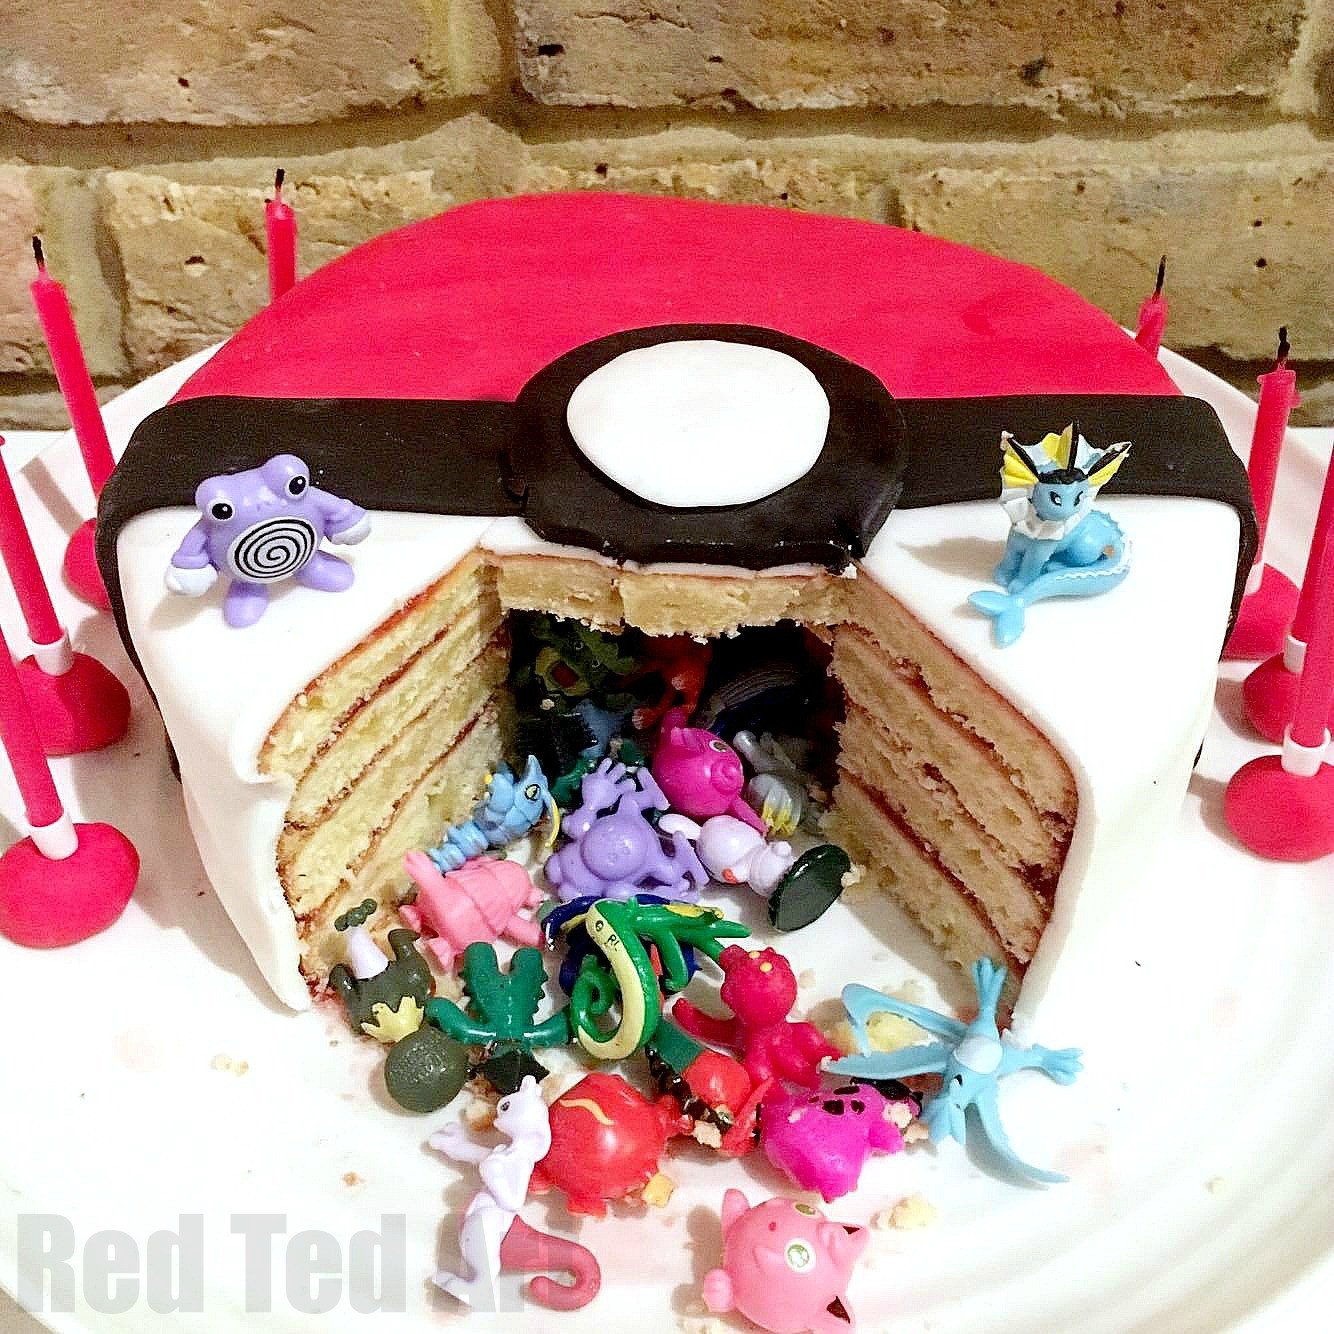 Best ideas about DIY Birthday Cakes . Save or Pin DIY Pokemon Cake Surprise Pinata Pokeball Cake Red Ted Now.